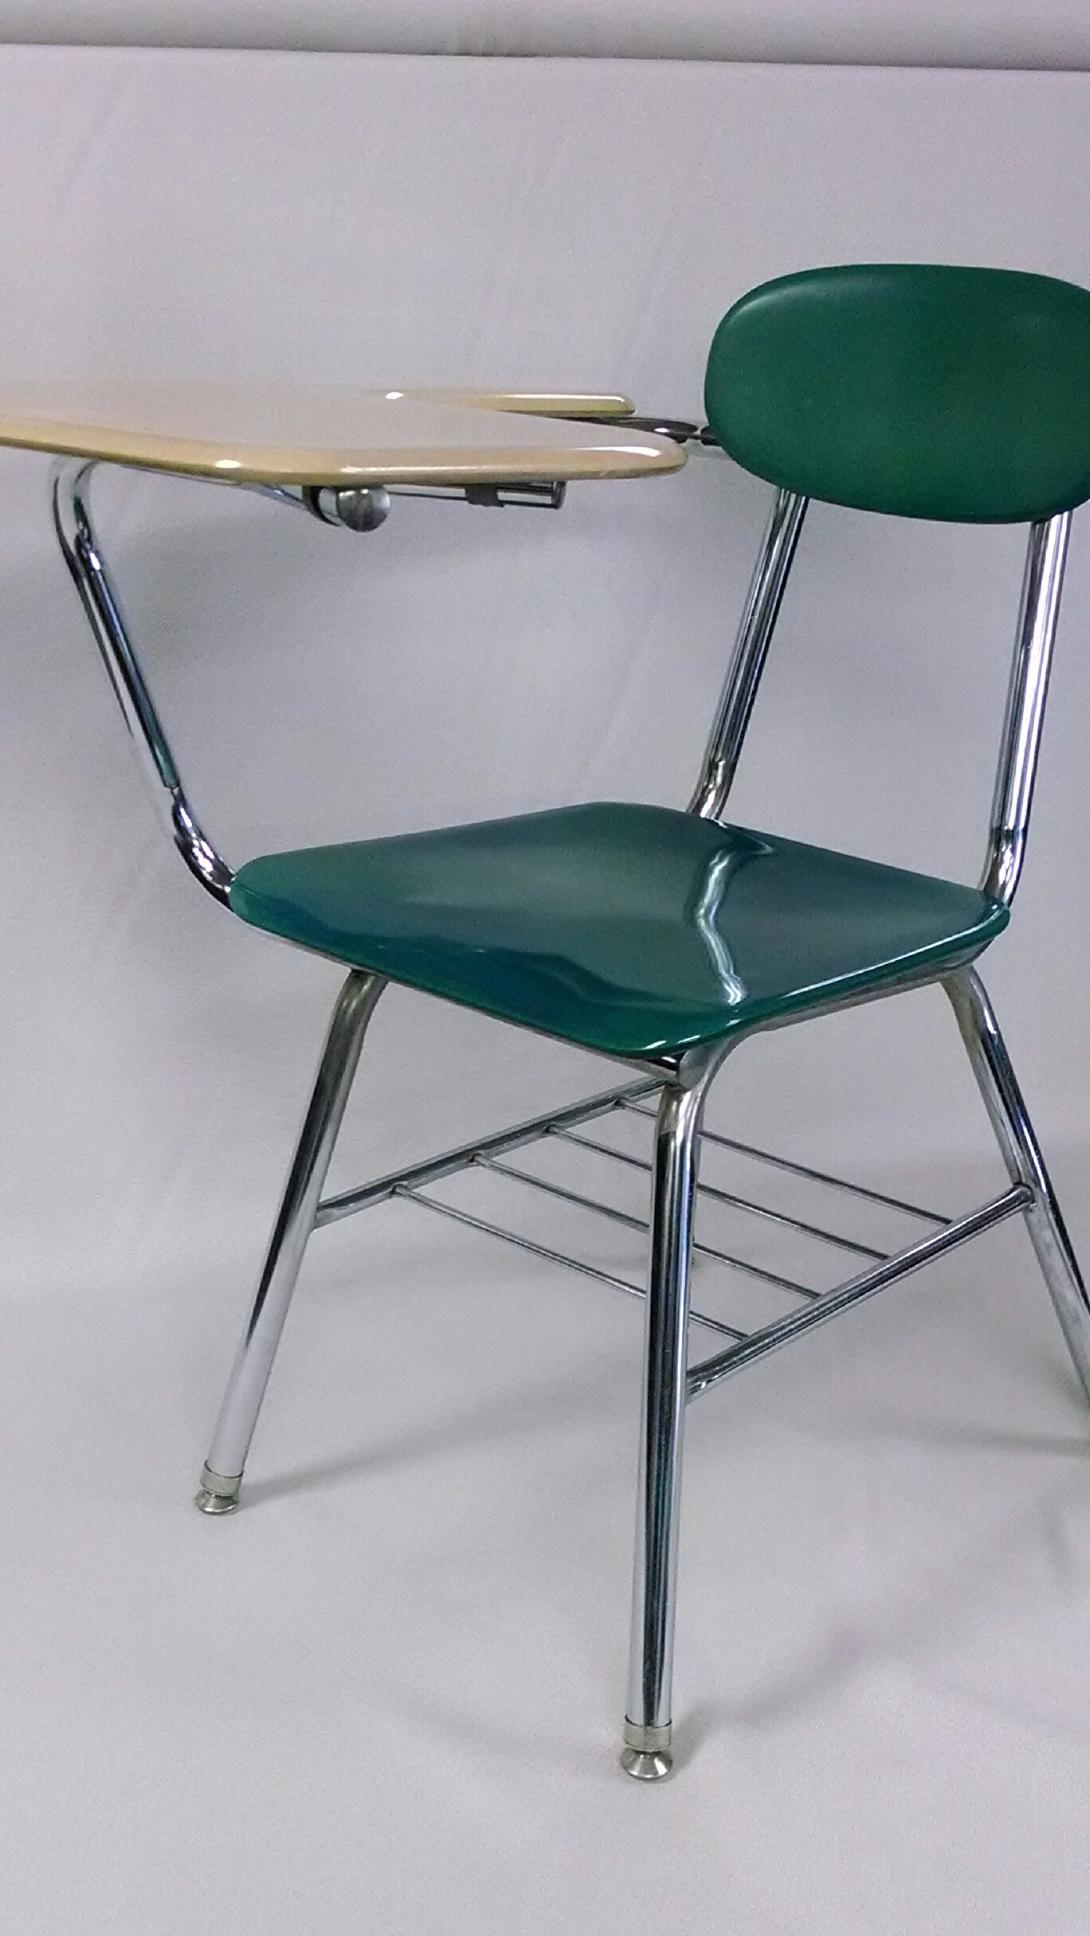 office chairs unlimited chair leg extenders lowes student furniture 2014 07 22 10 21 19